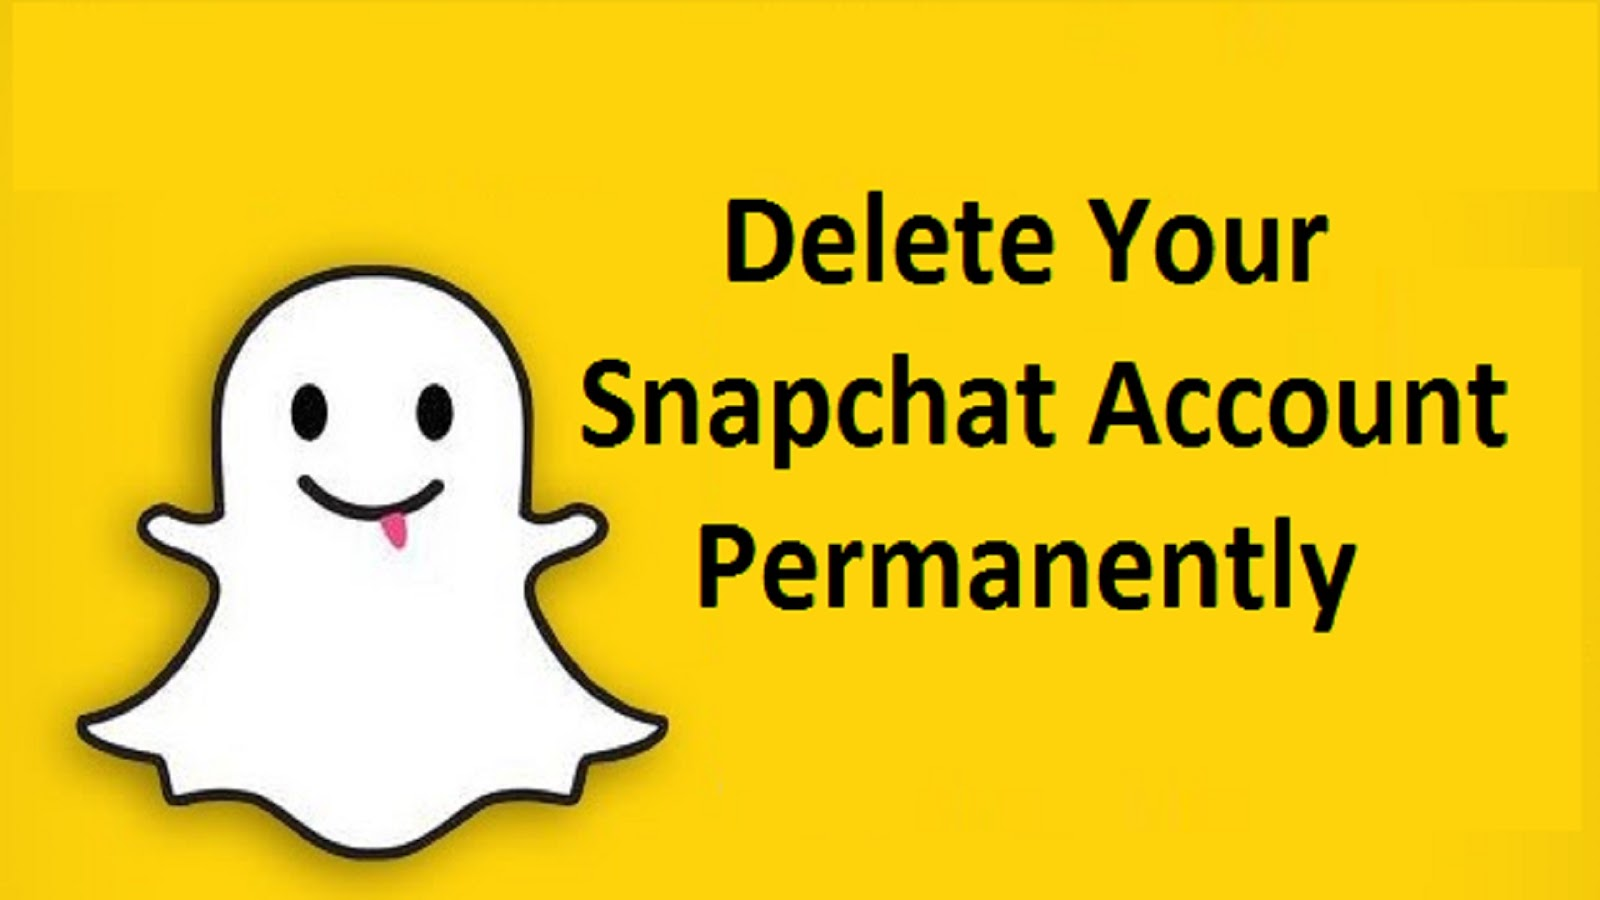 How To Permanently Delete Your Snapchat Account How Can I Delete My Snapchat  Account? How